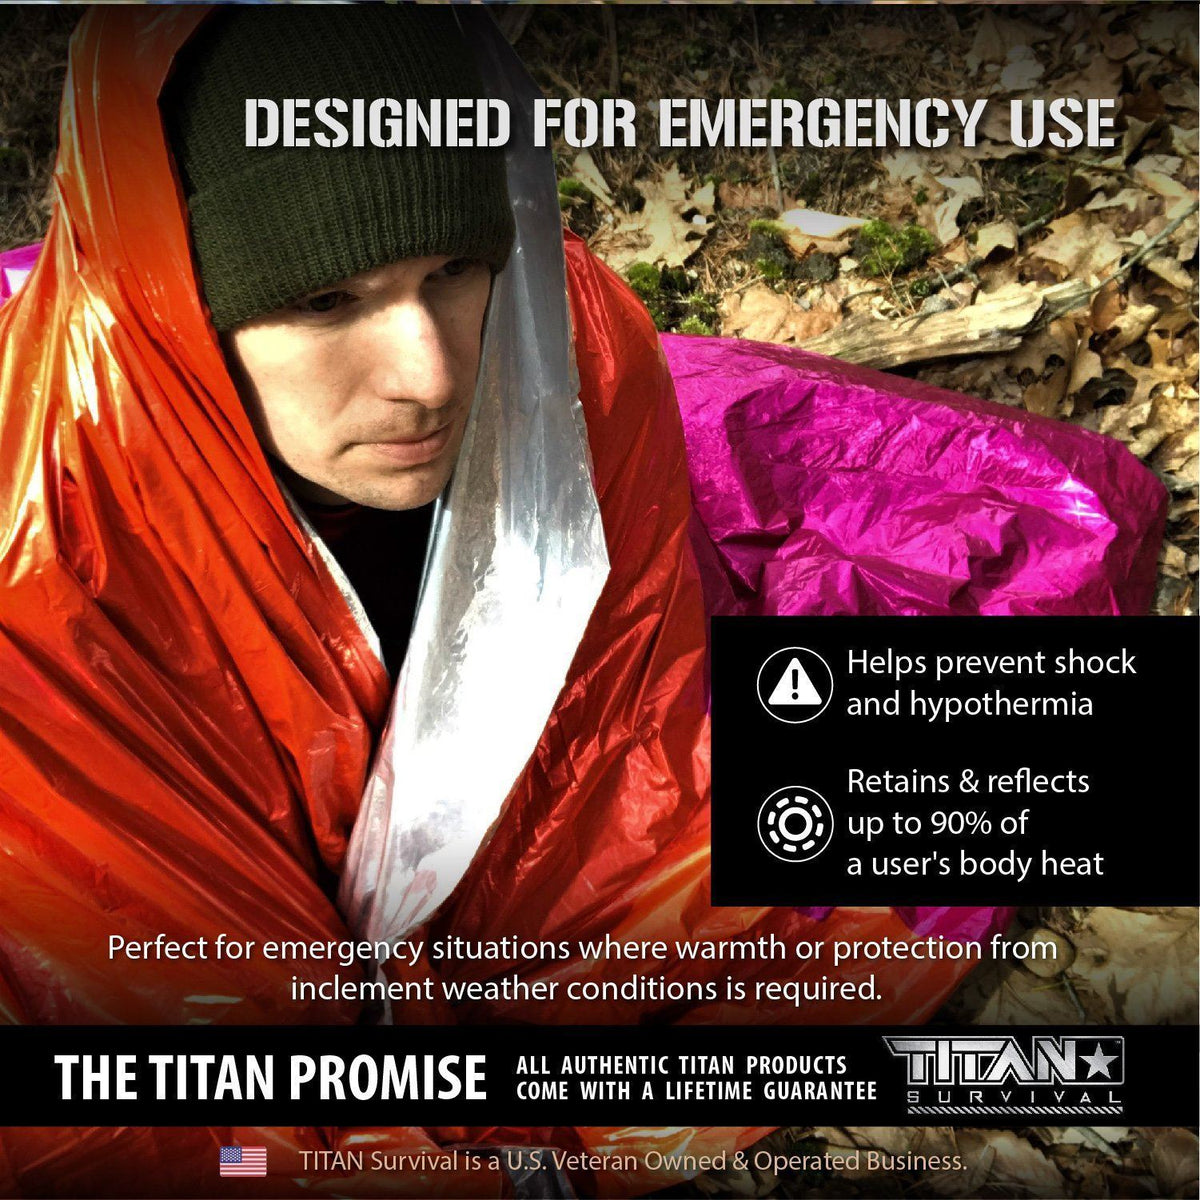 Mylar Survival Blankets, 5-Pack, SIGNAL PANEL (X-LARGE) Survival Blankets Titan Survival